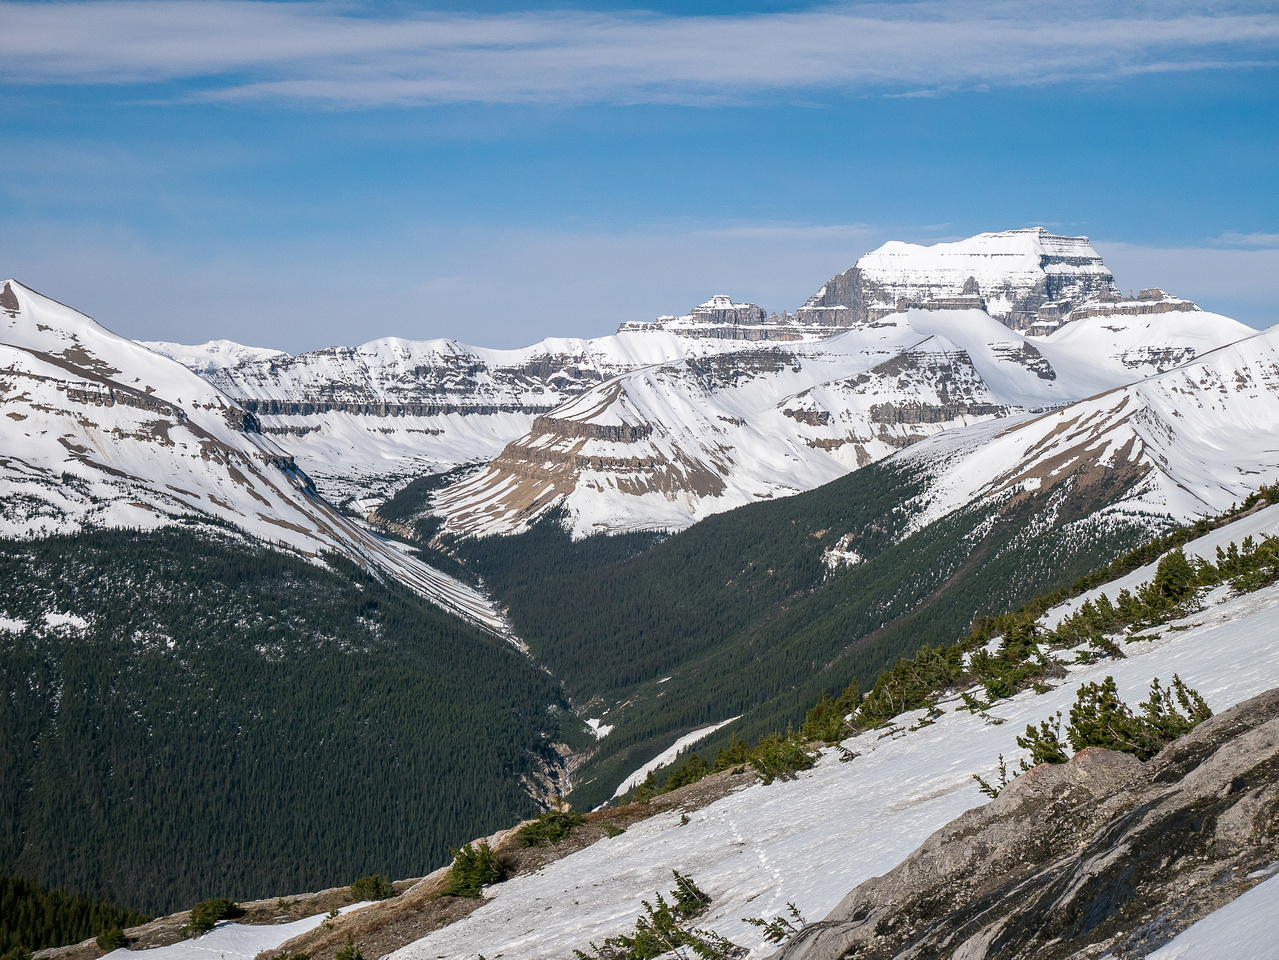 Descending to the steep access gully with Saskatchewan stealing the show.